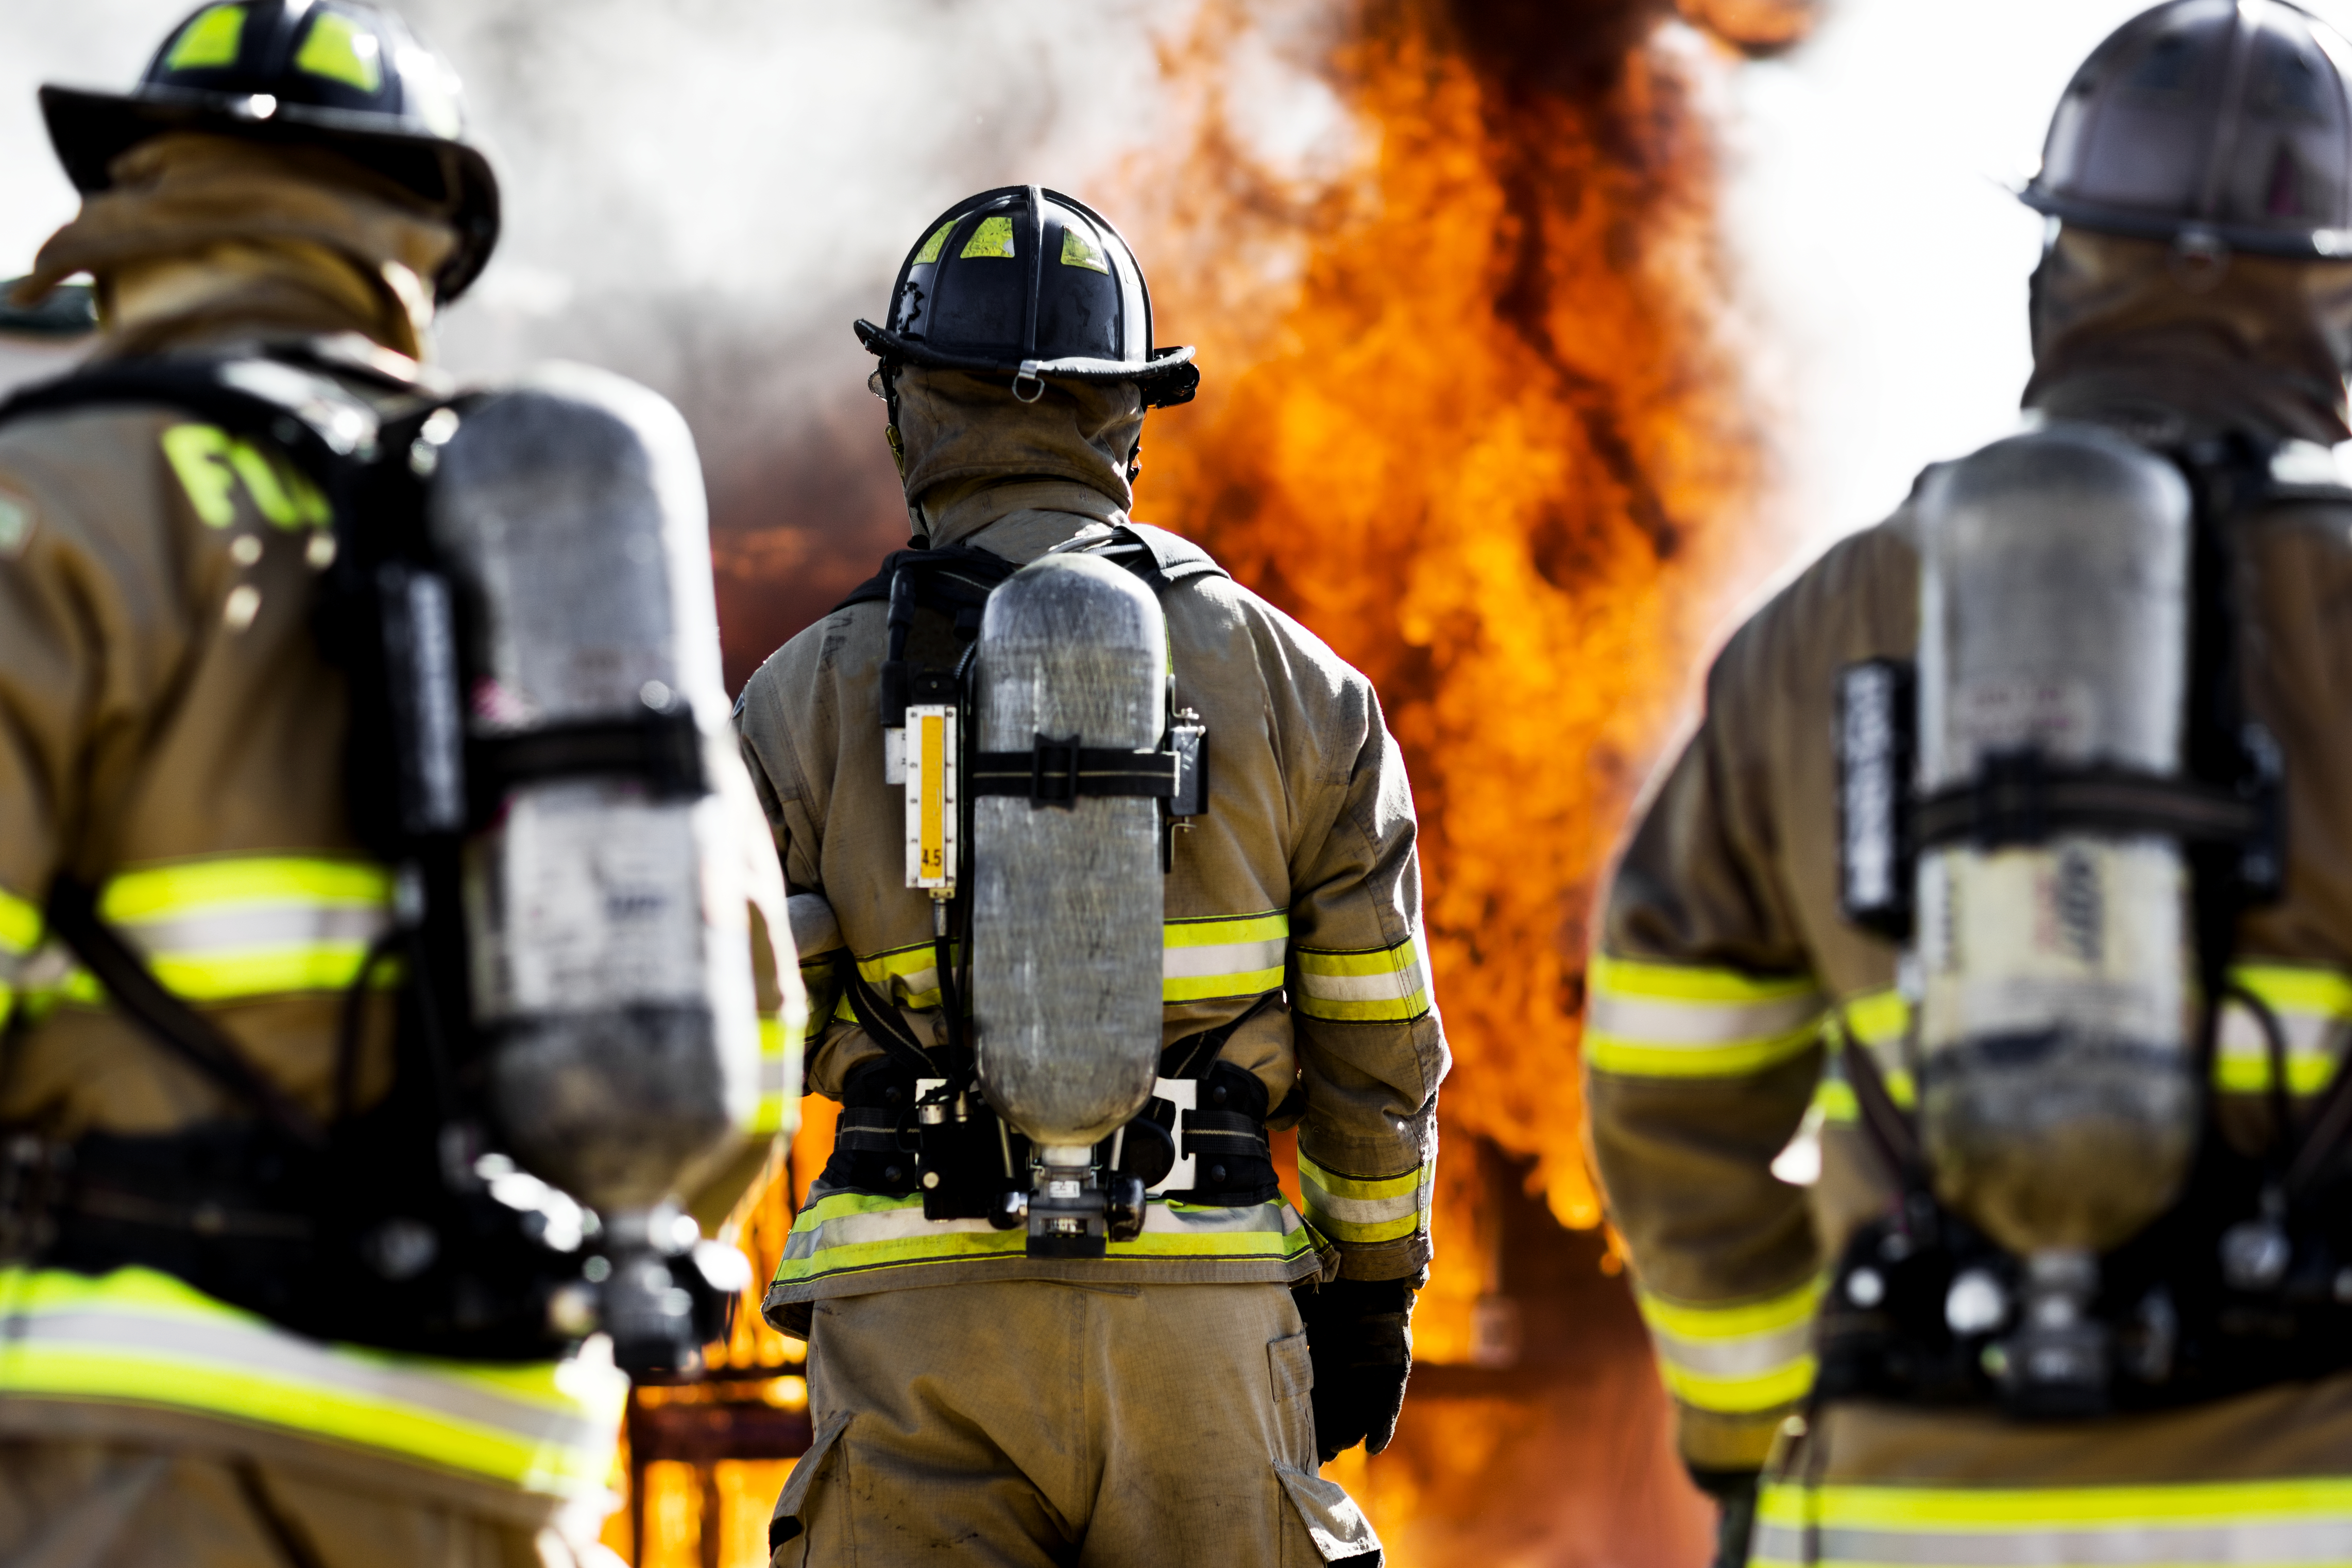 Fire Sector Federation continues its remit to shape the future of UK fire policy